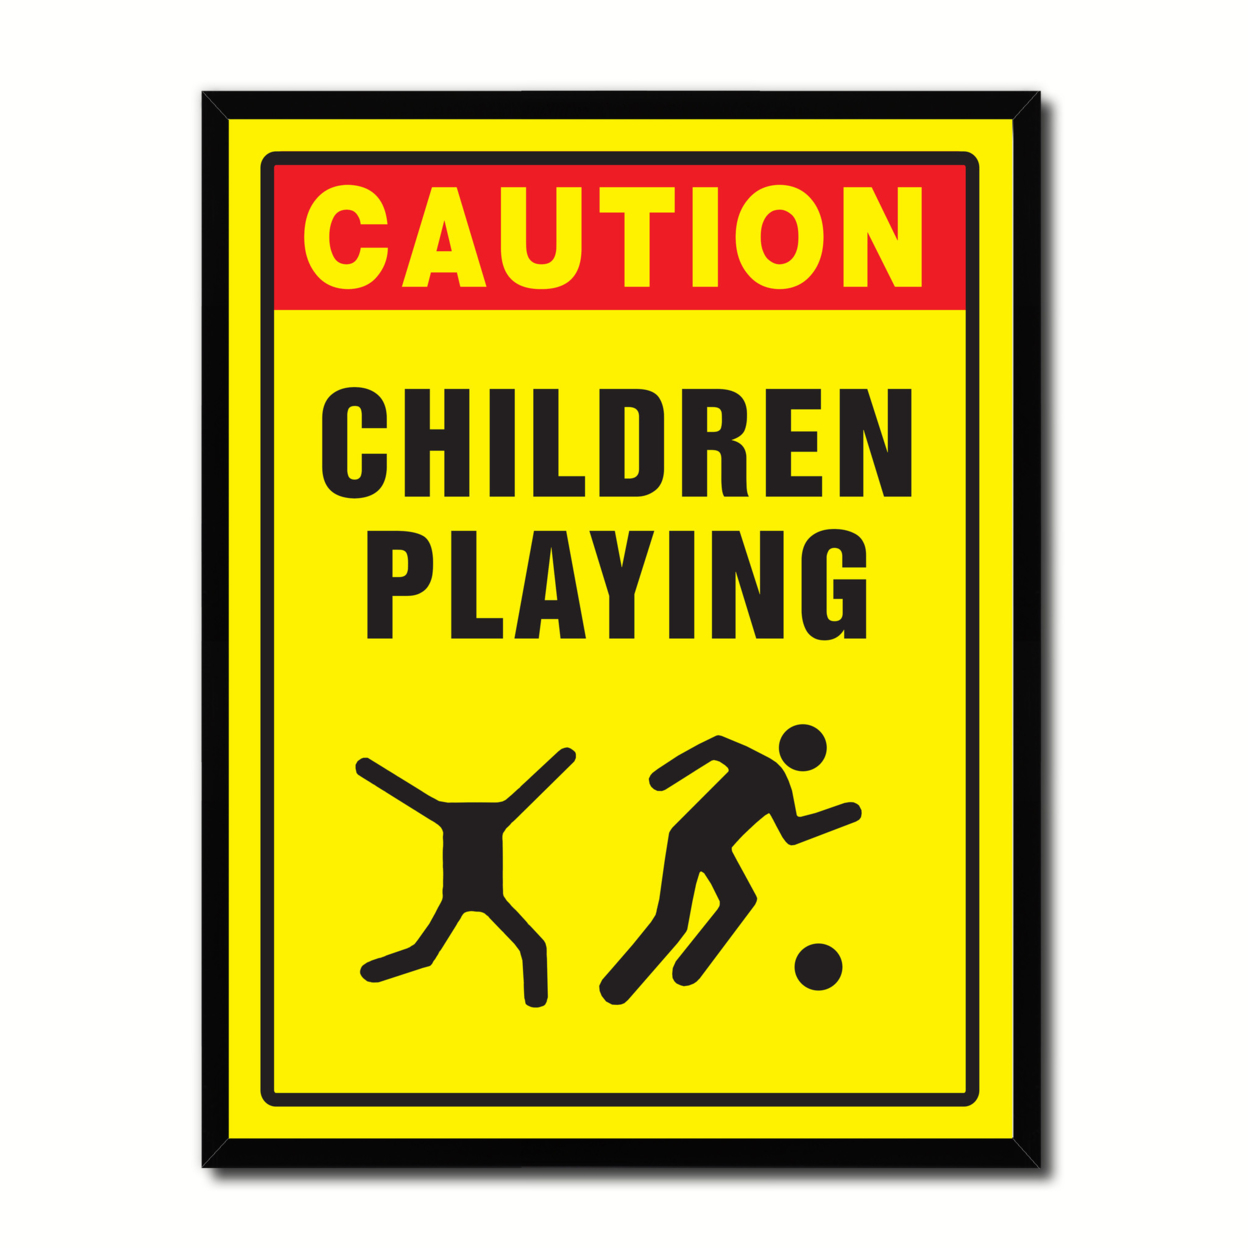 "Caution Children Playing Caution Sign Gift Ideas Wall Art Home D?cor Gift Ideas Canvas Pint - 7""x9\"" 57f6c845e2246165175807f6"